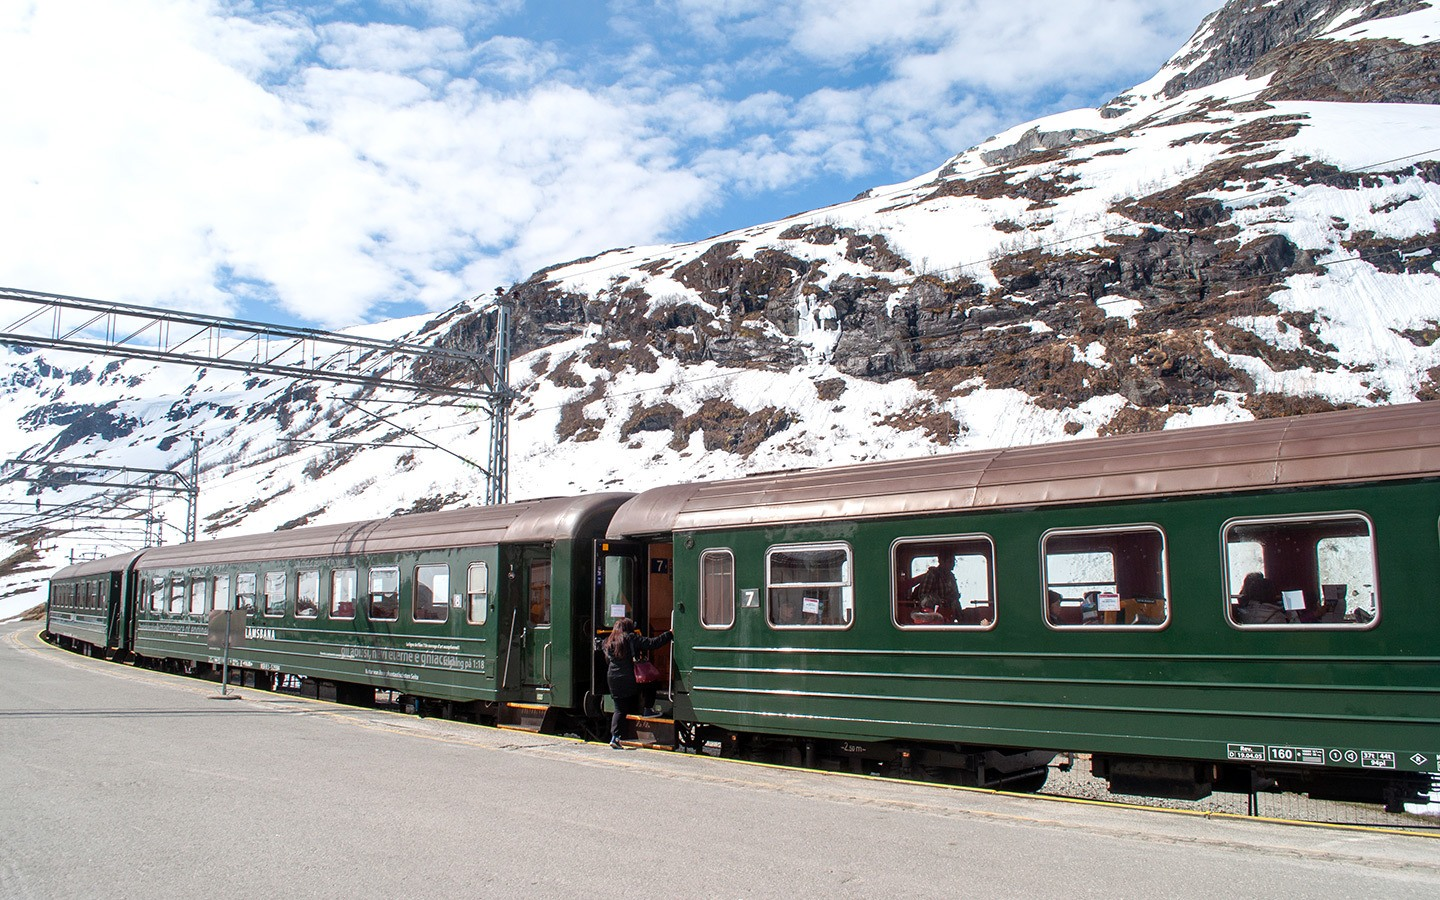 Europe by train: The Flamsbana scenic train in Norway